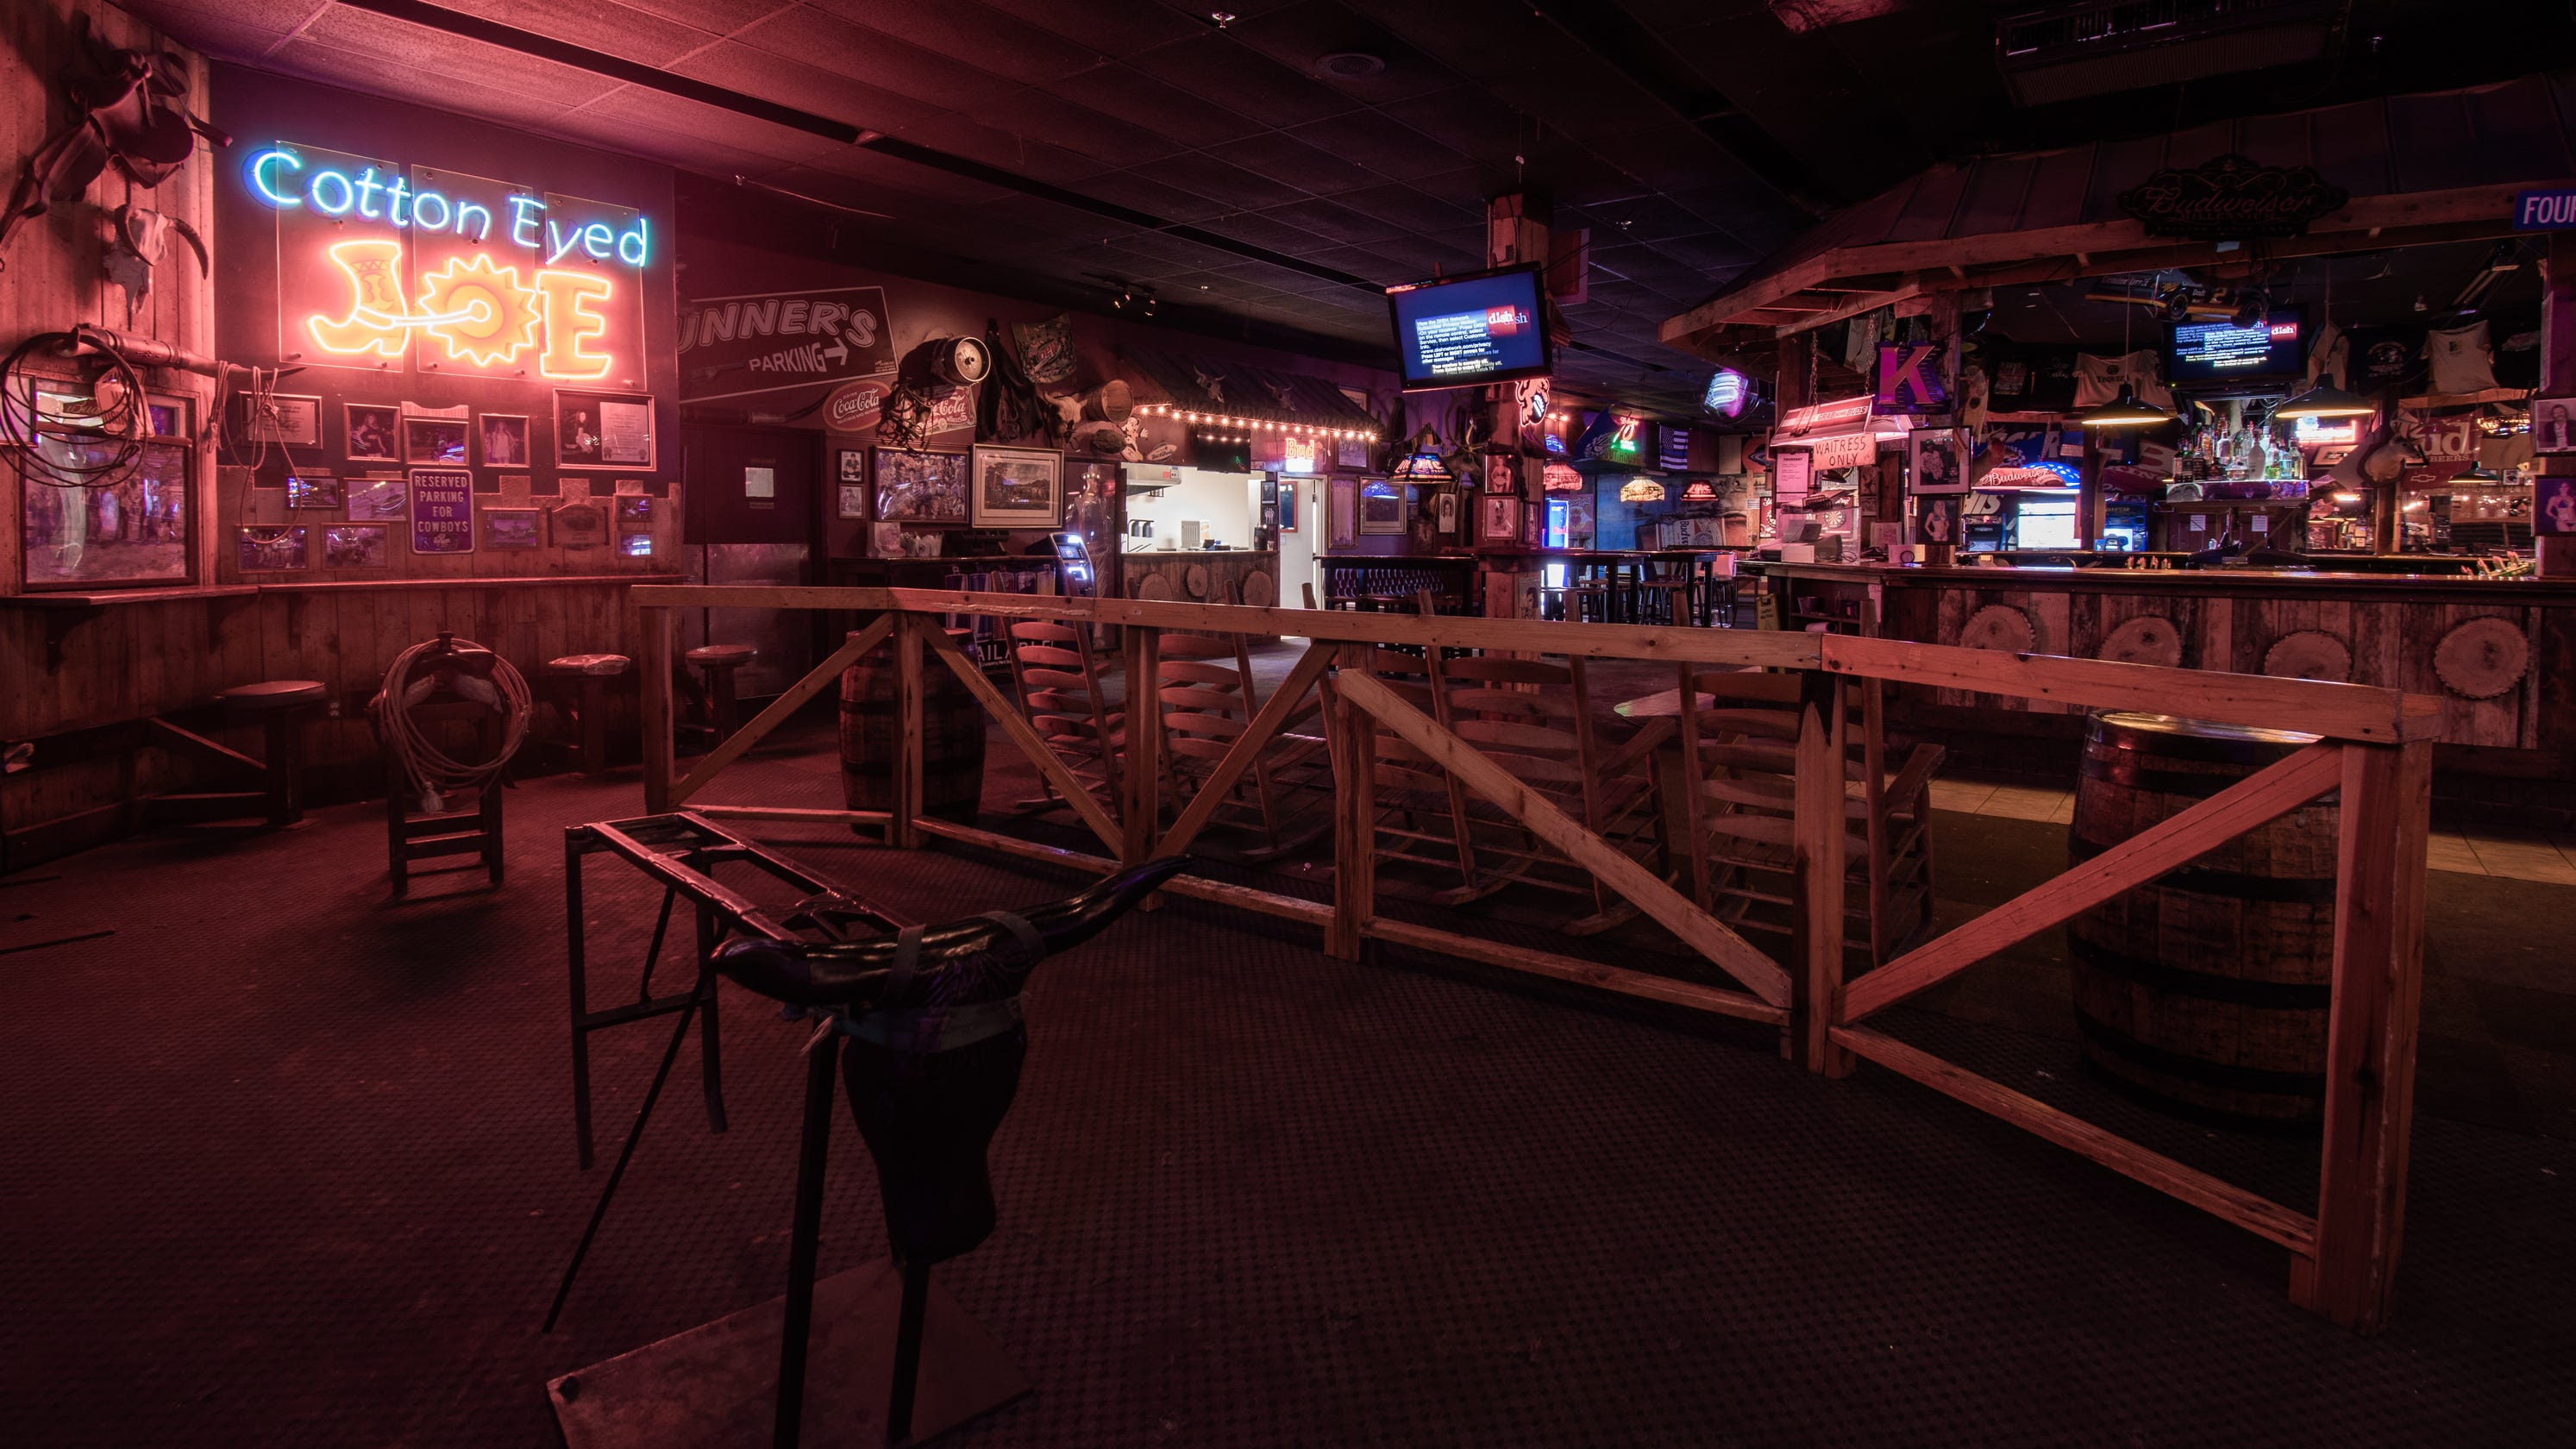 Knoxville's Cotton Eyed Joe to receive at least $150K in